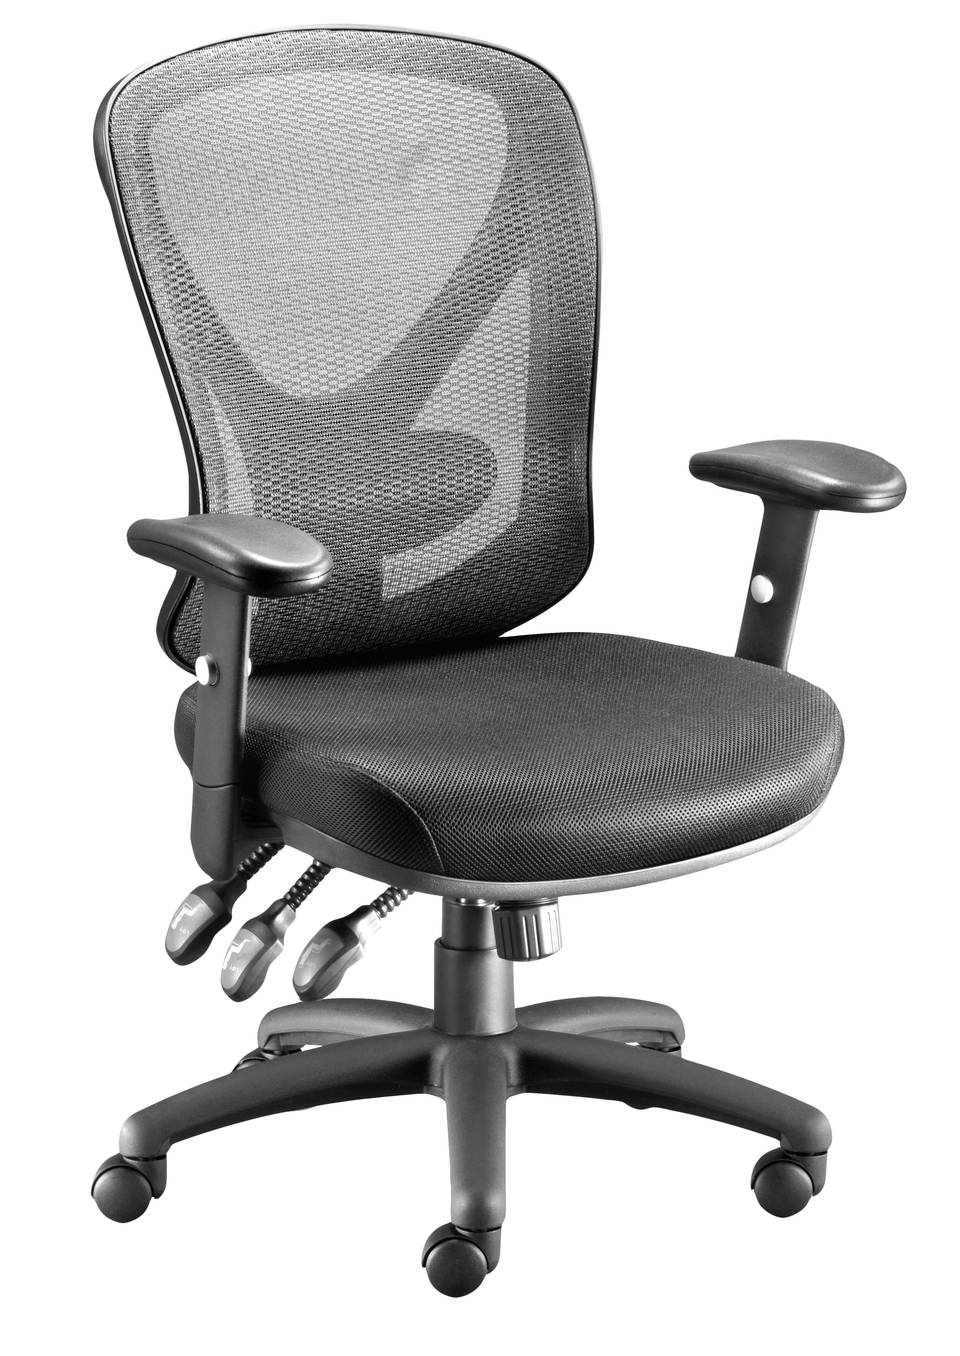 office chairs staples carder mesh office chair, black FWTAJMB